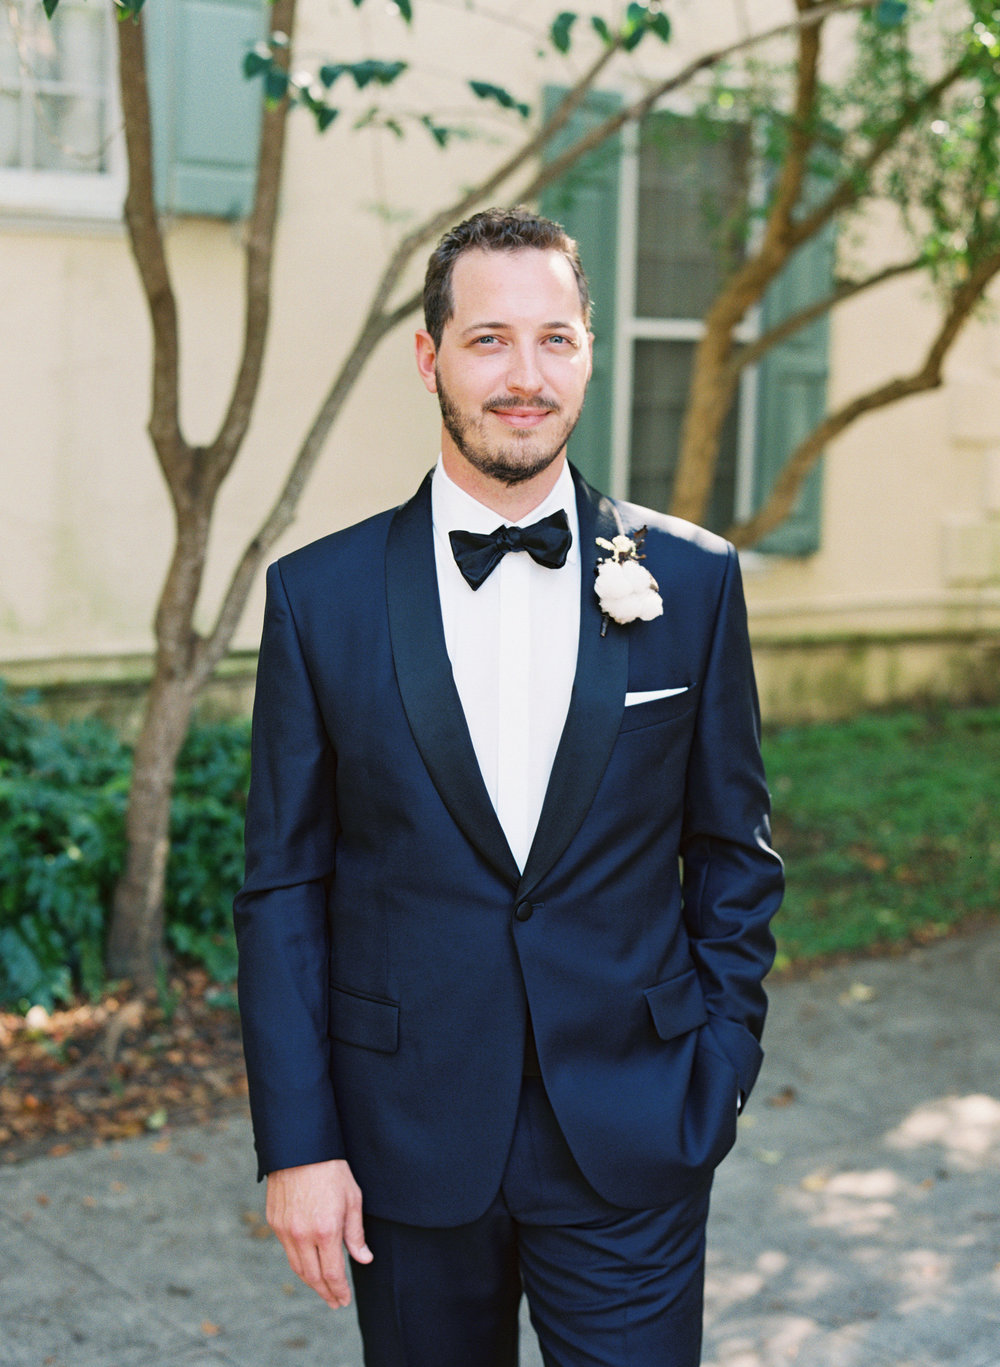 Charleston groom in custom navy Joseph Abboud tuxedo  //  Wedding photography by Landon Jacob  //  A Lowcountry Wedding Magazine